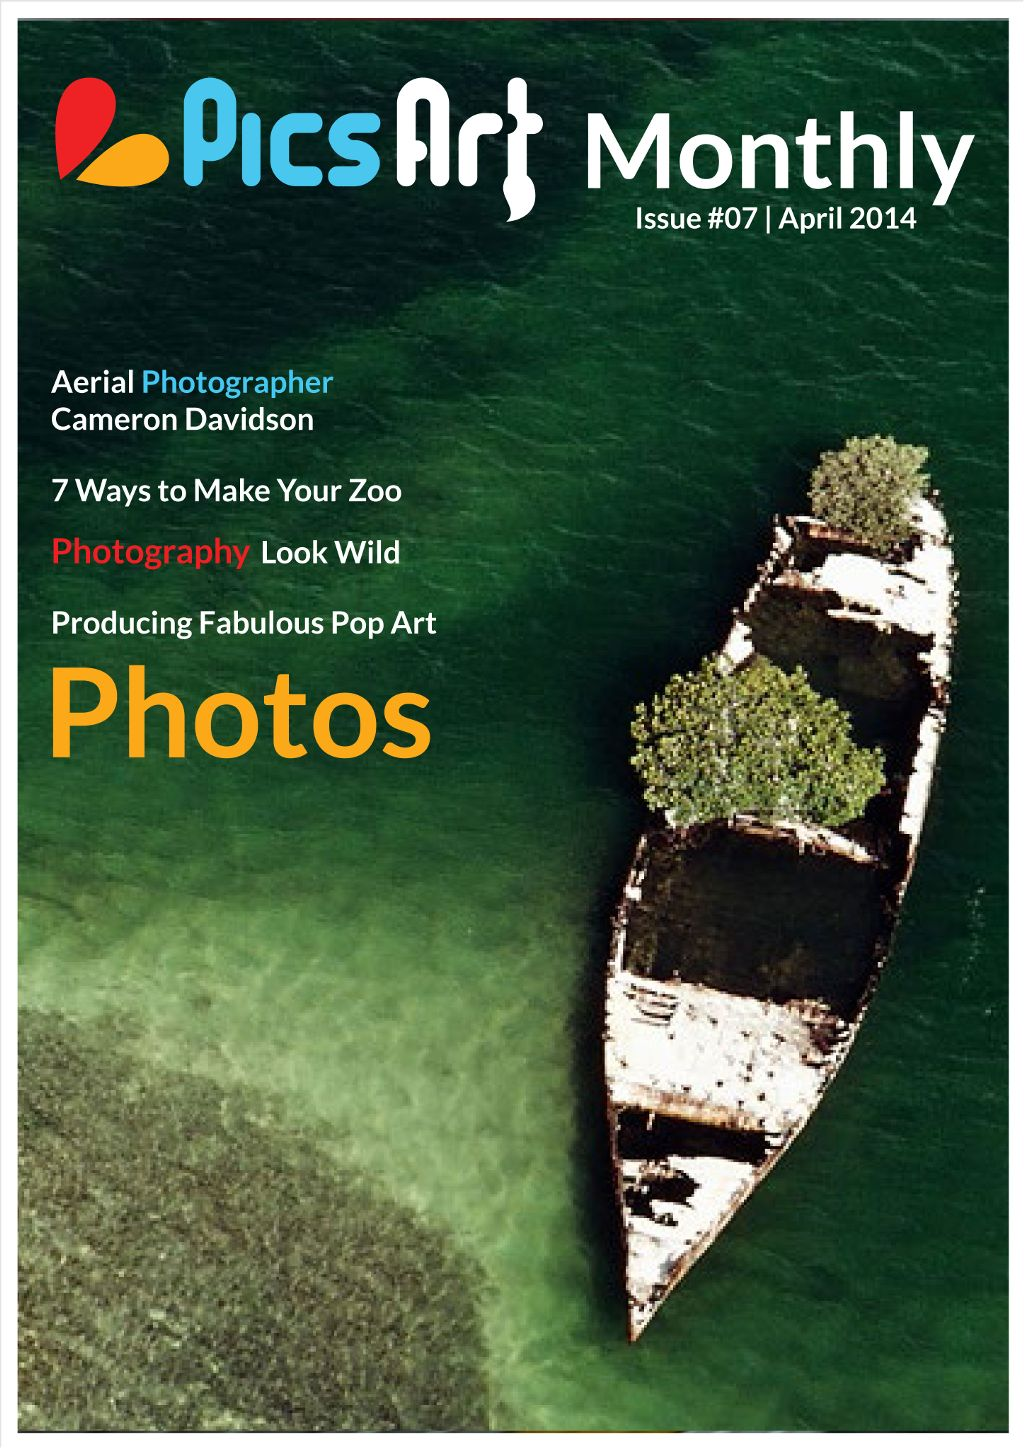 PicsArt monthly magazine april issue